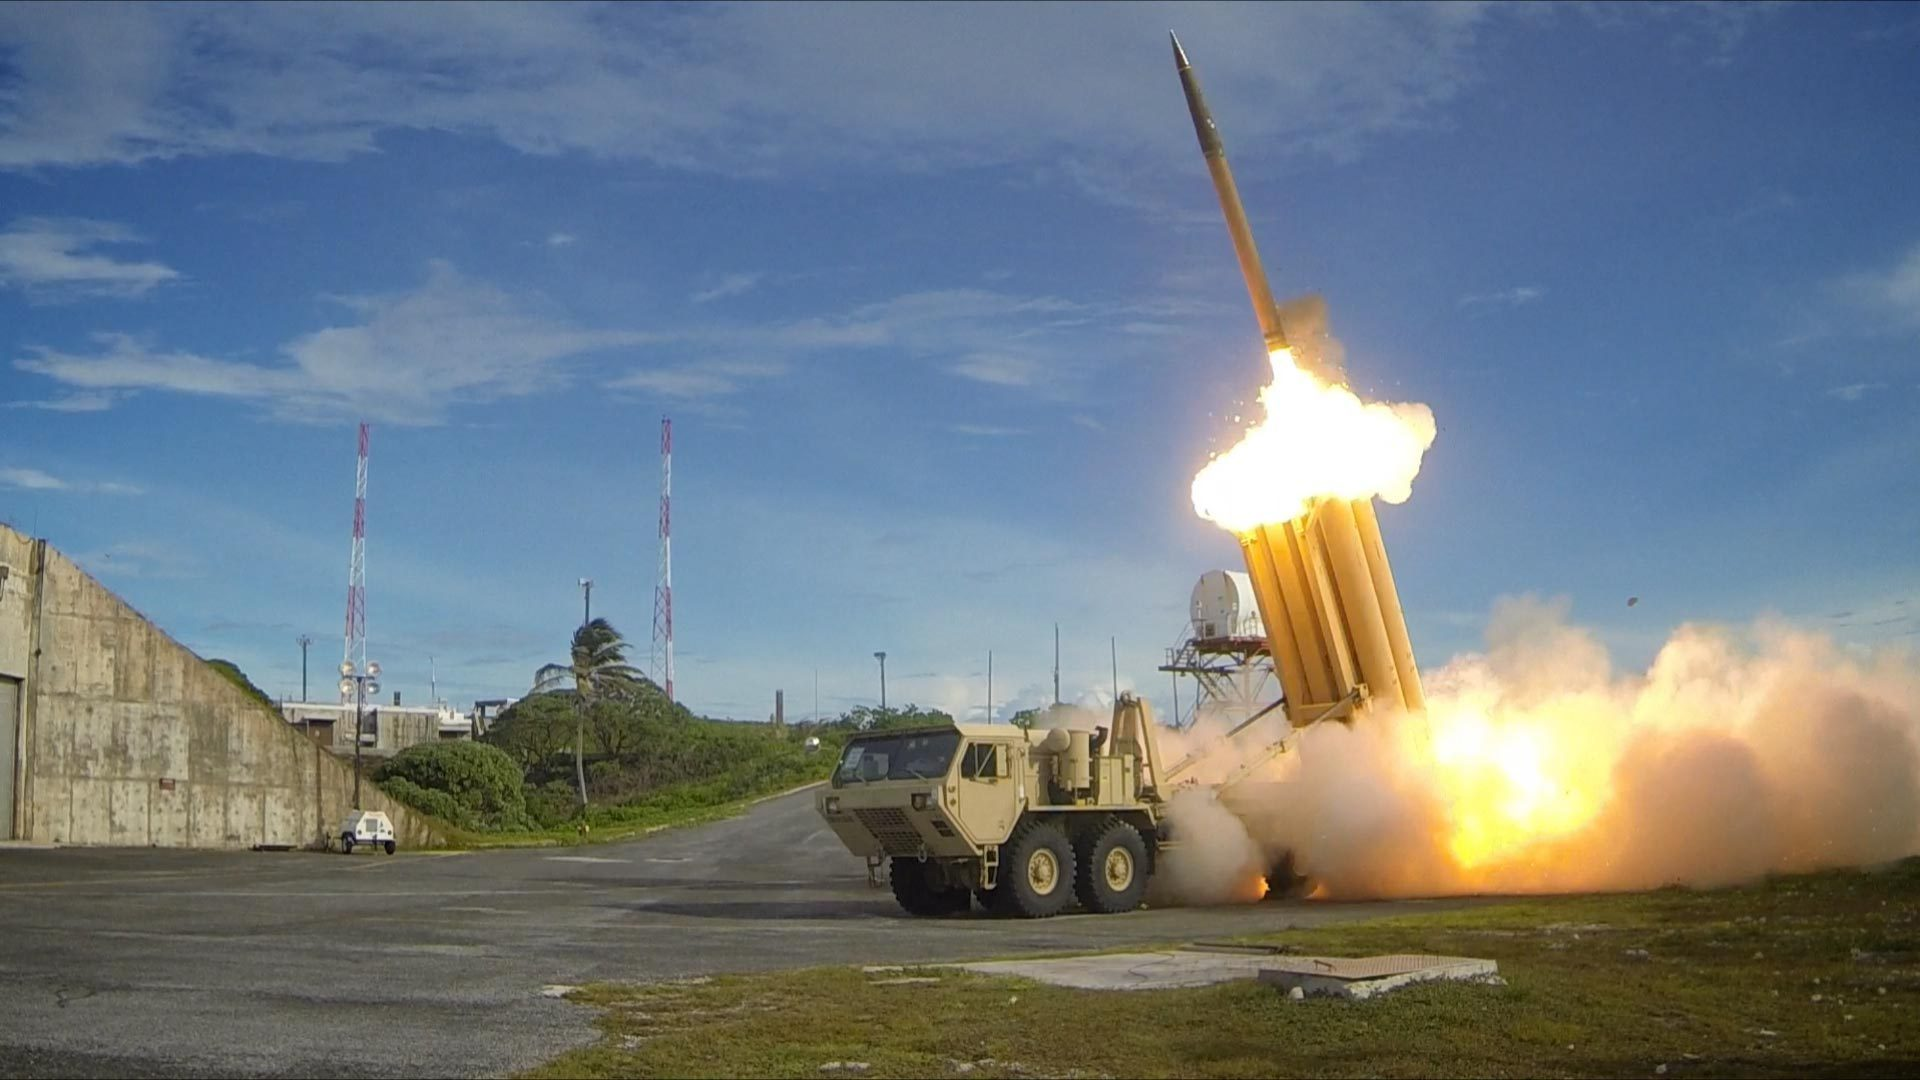 U.S. refuses to discuss missile defense, seeks security...